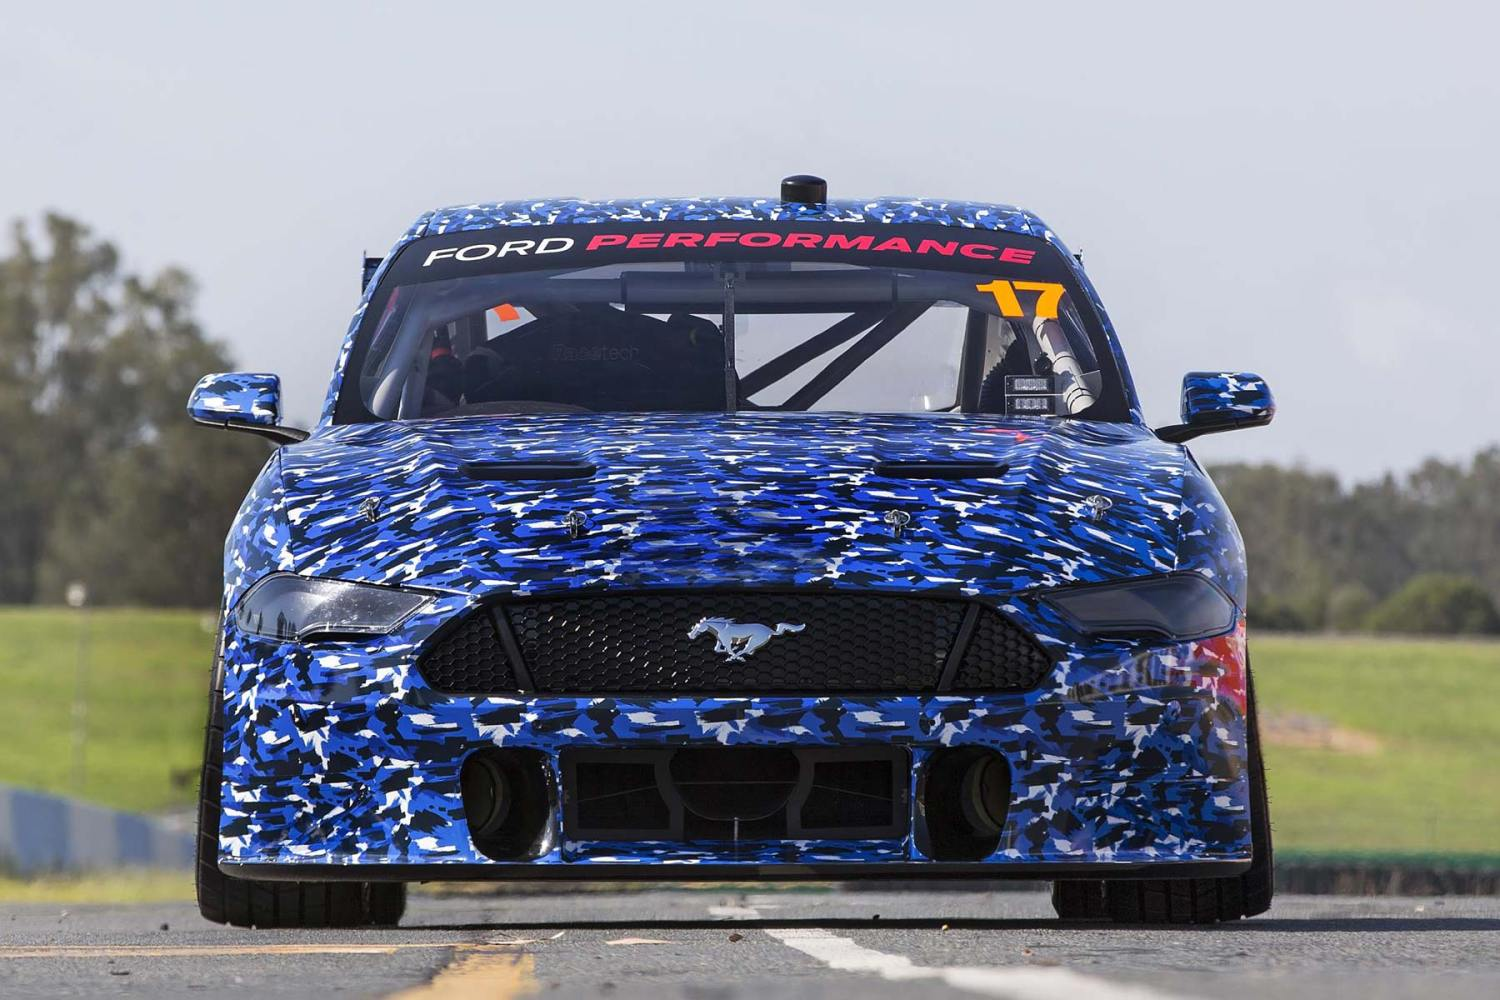 2019 Ford Performance Mustang Virgin Australia Supercar